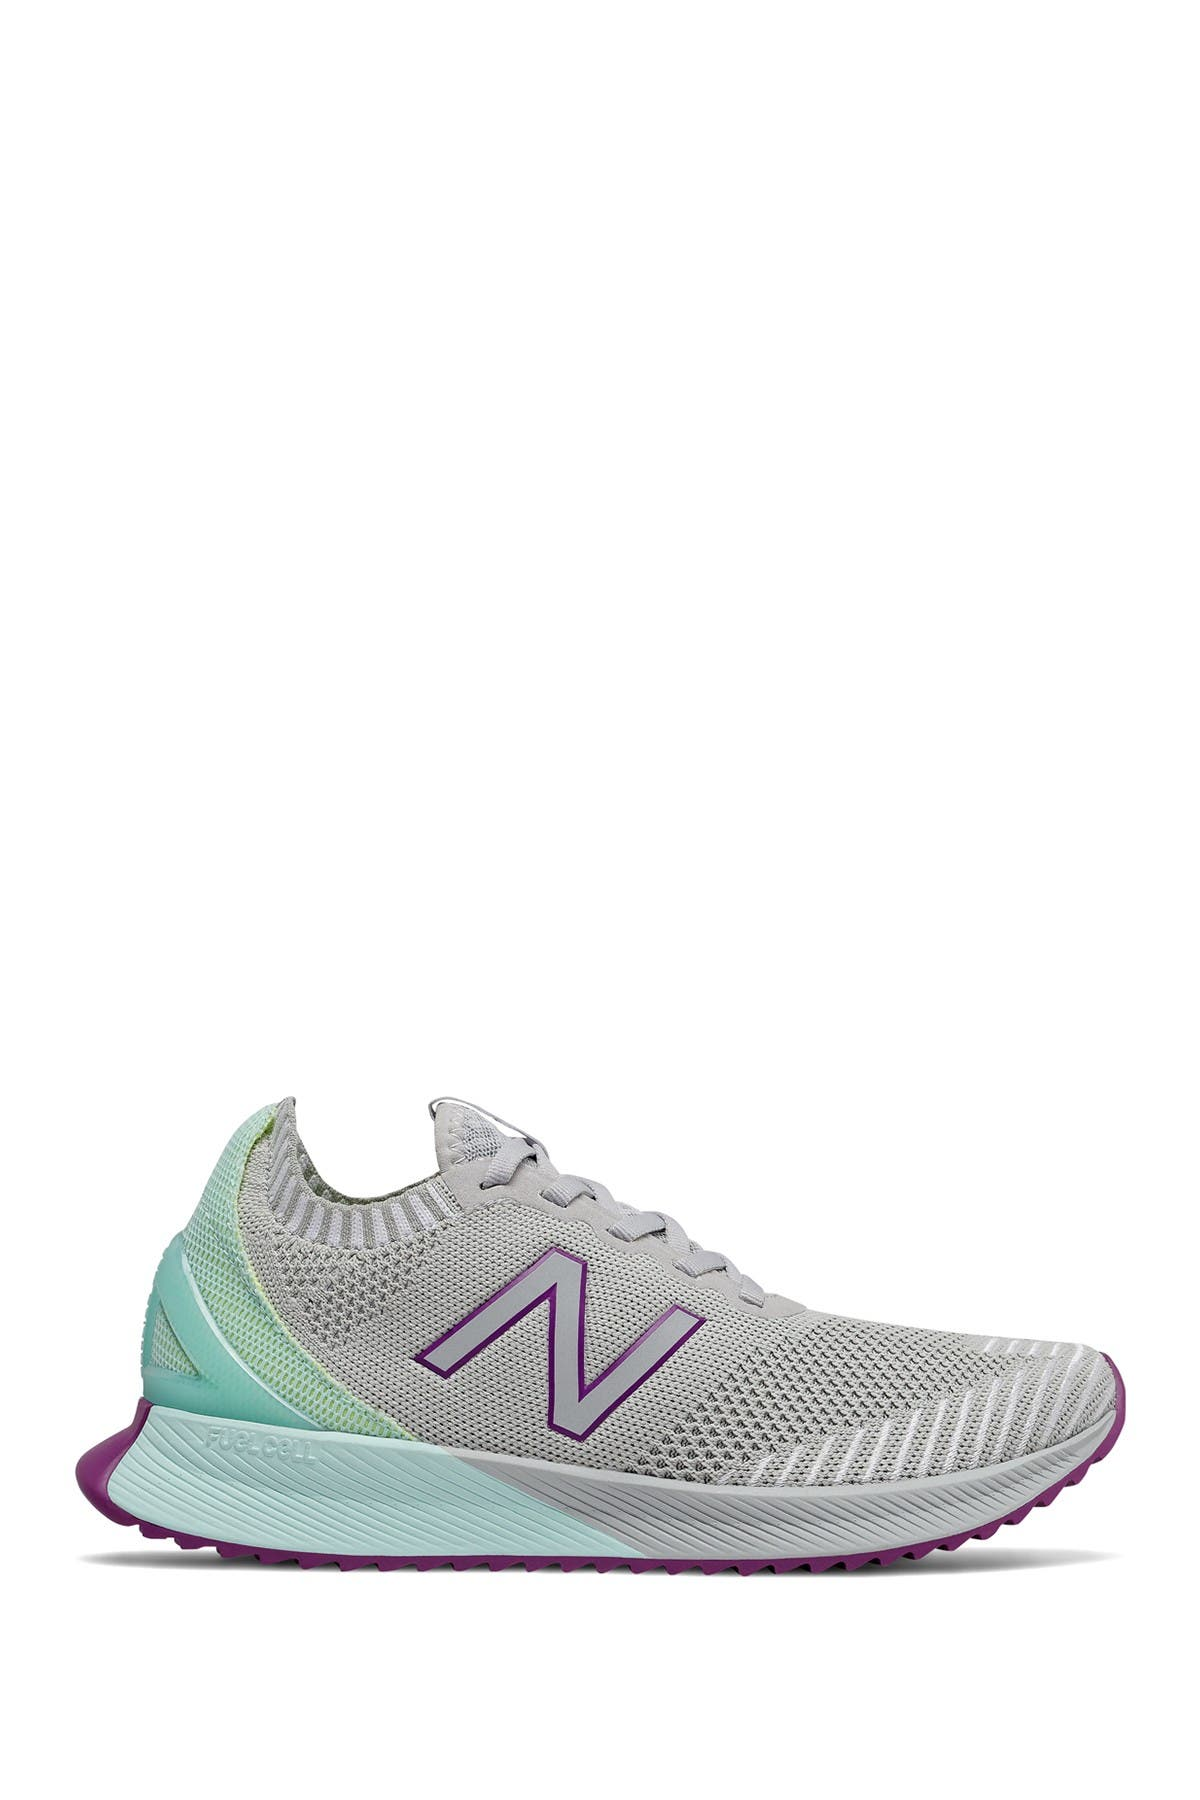 Image of New Balance Fuelcell Echo Sneaker